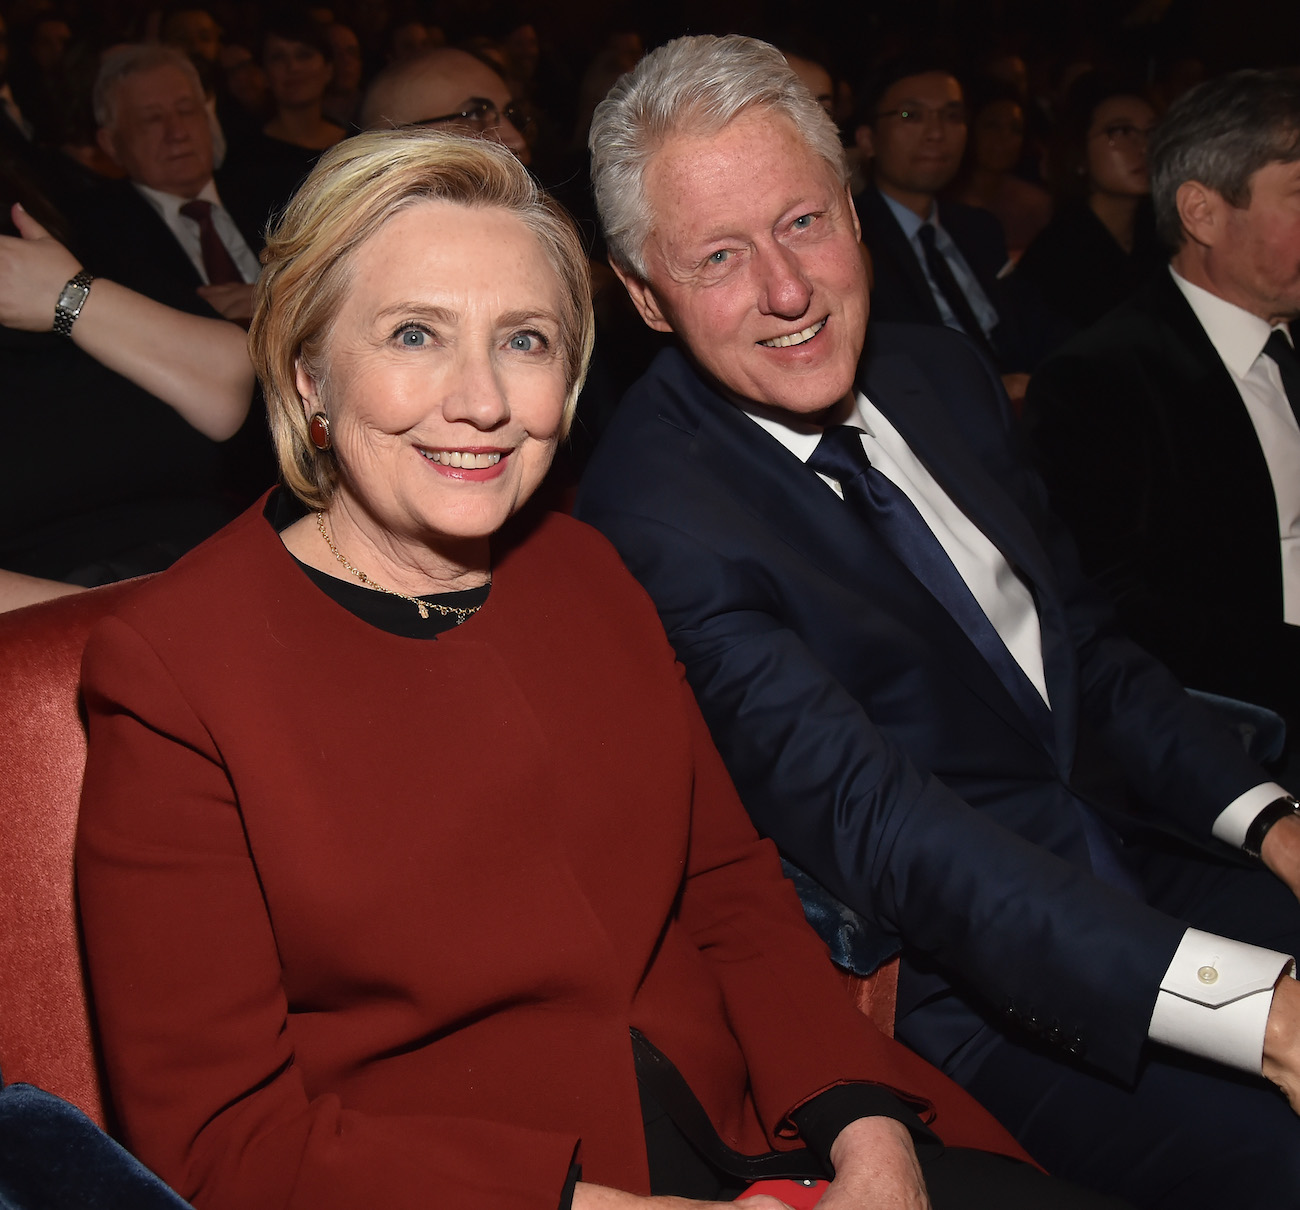 Hillary Clinton and Bill Clinton smile as they sit together at the 2018 Grammy Awards